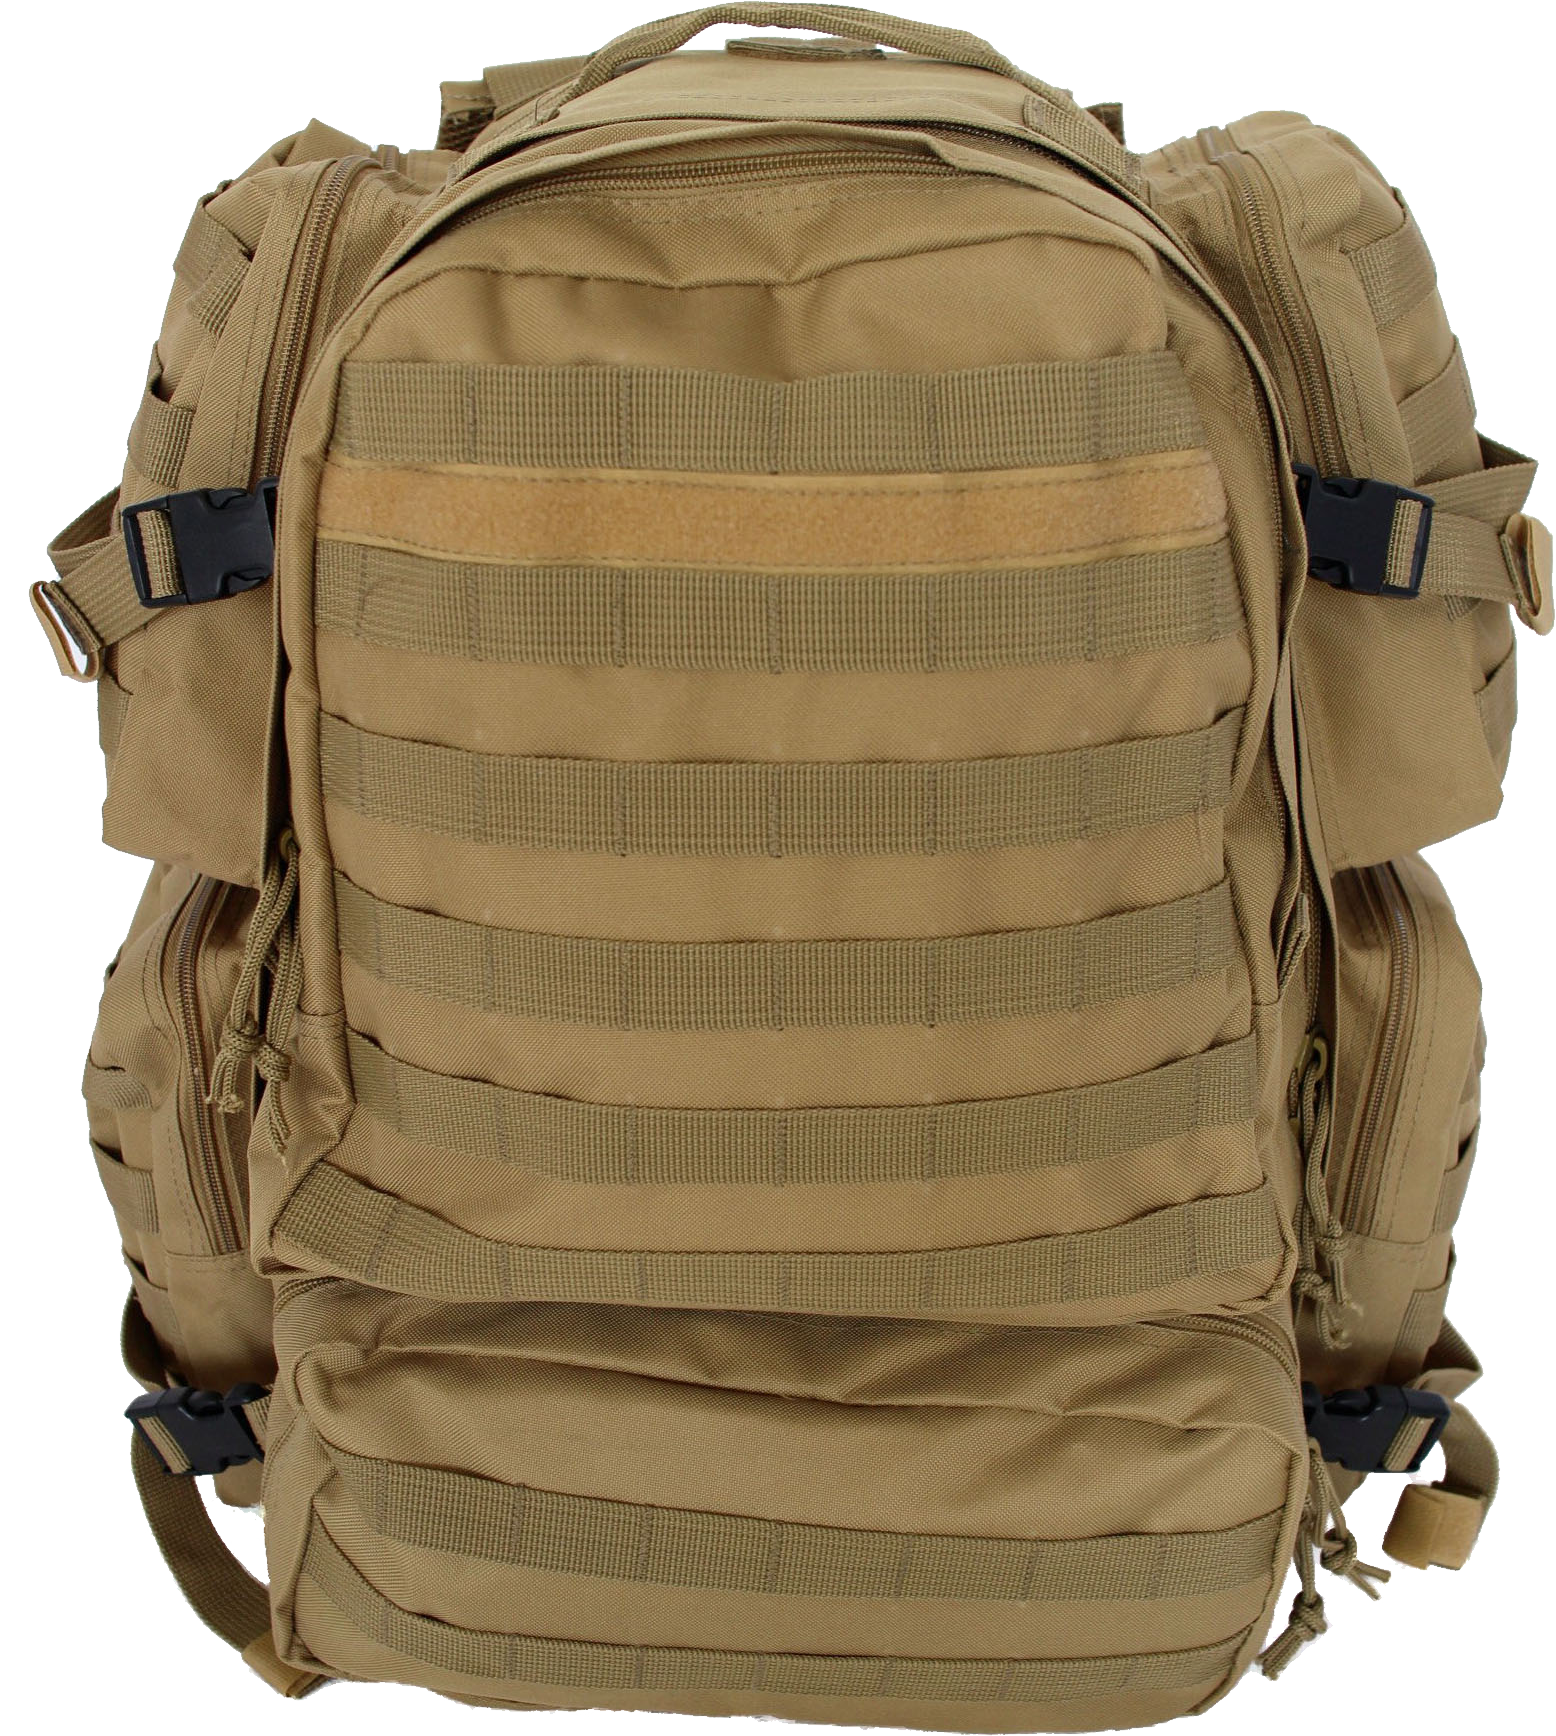 Military Tactical Sling Bag Pack